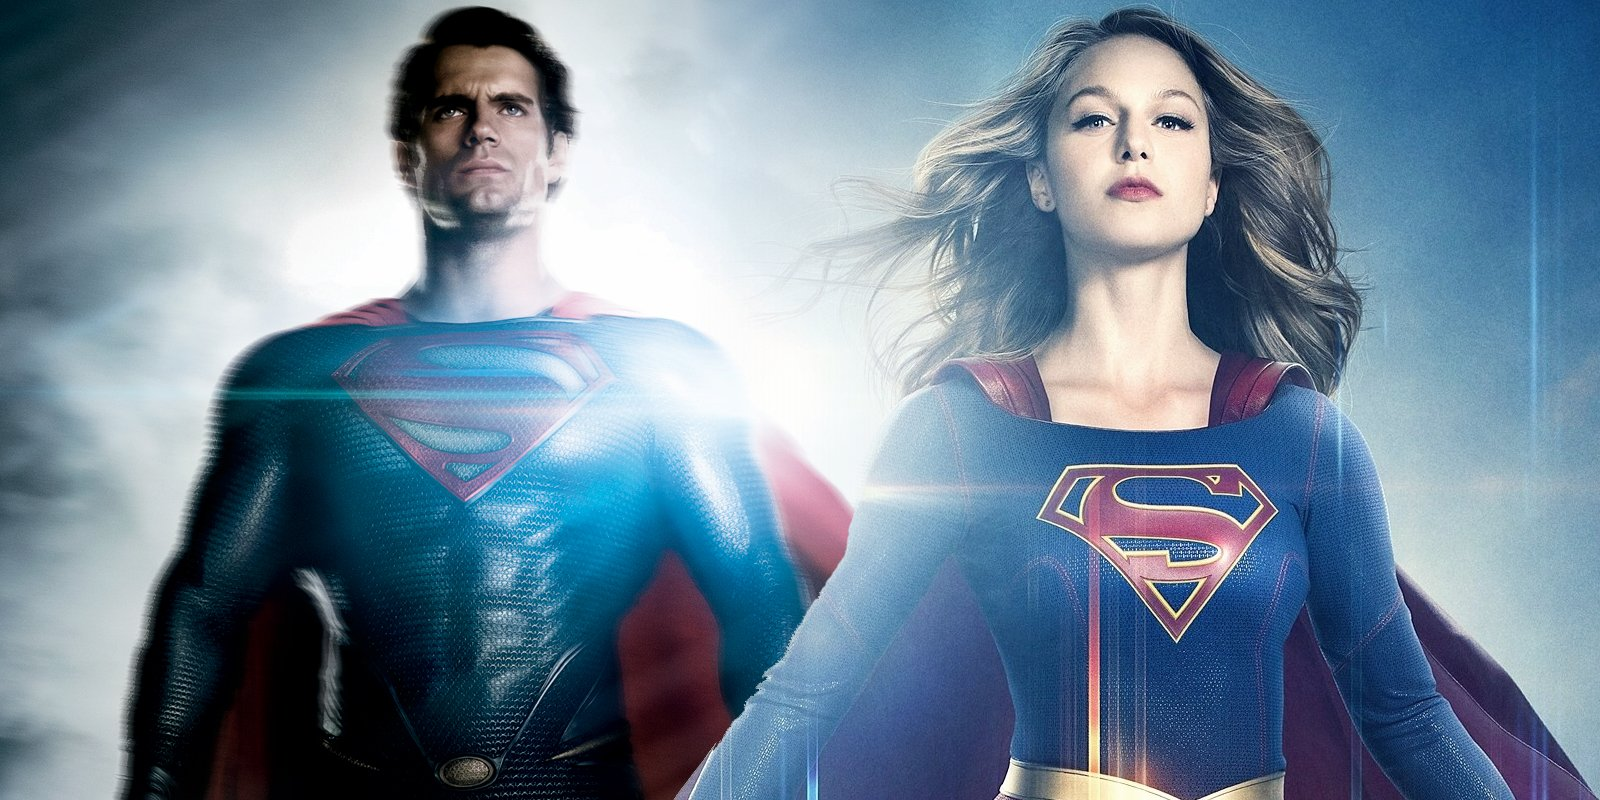 Rumor: Man of Steel 2 Will Introduce Supergirl to the DCEU - https://t.co/Z96Lc8rIa9 https://t.co/PgqSg4DtQL